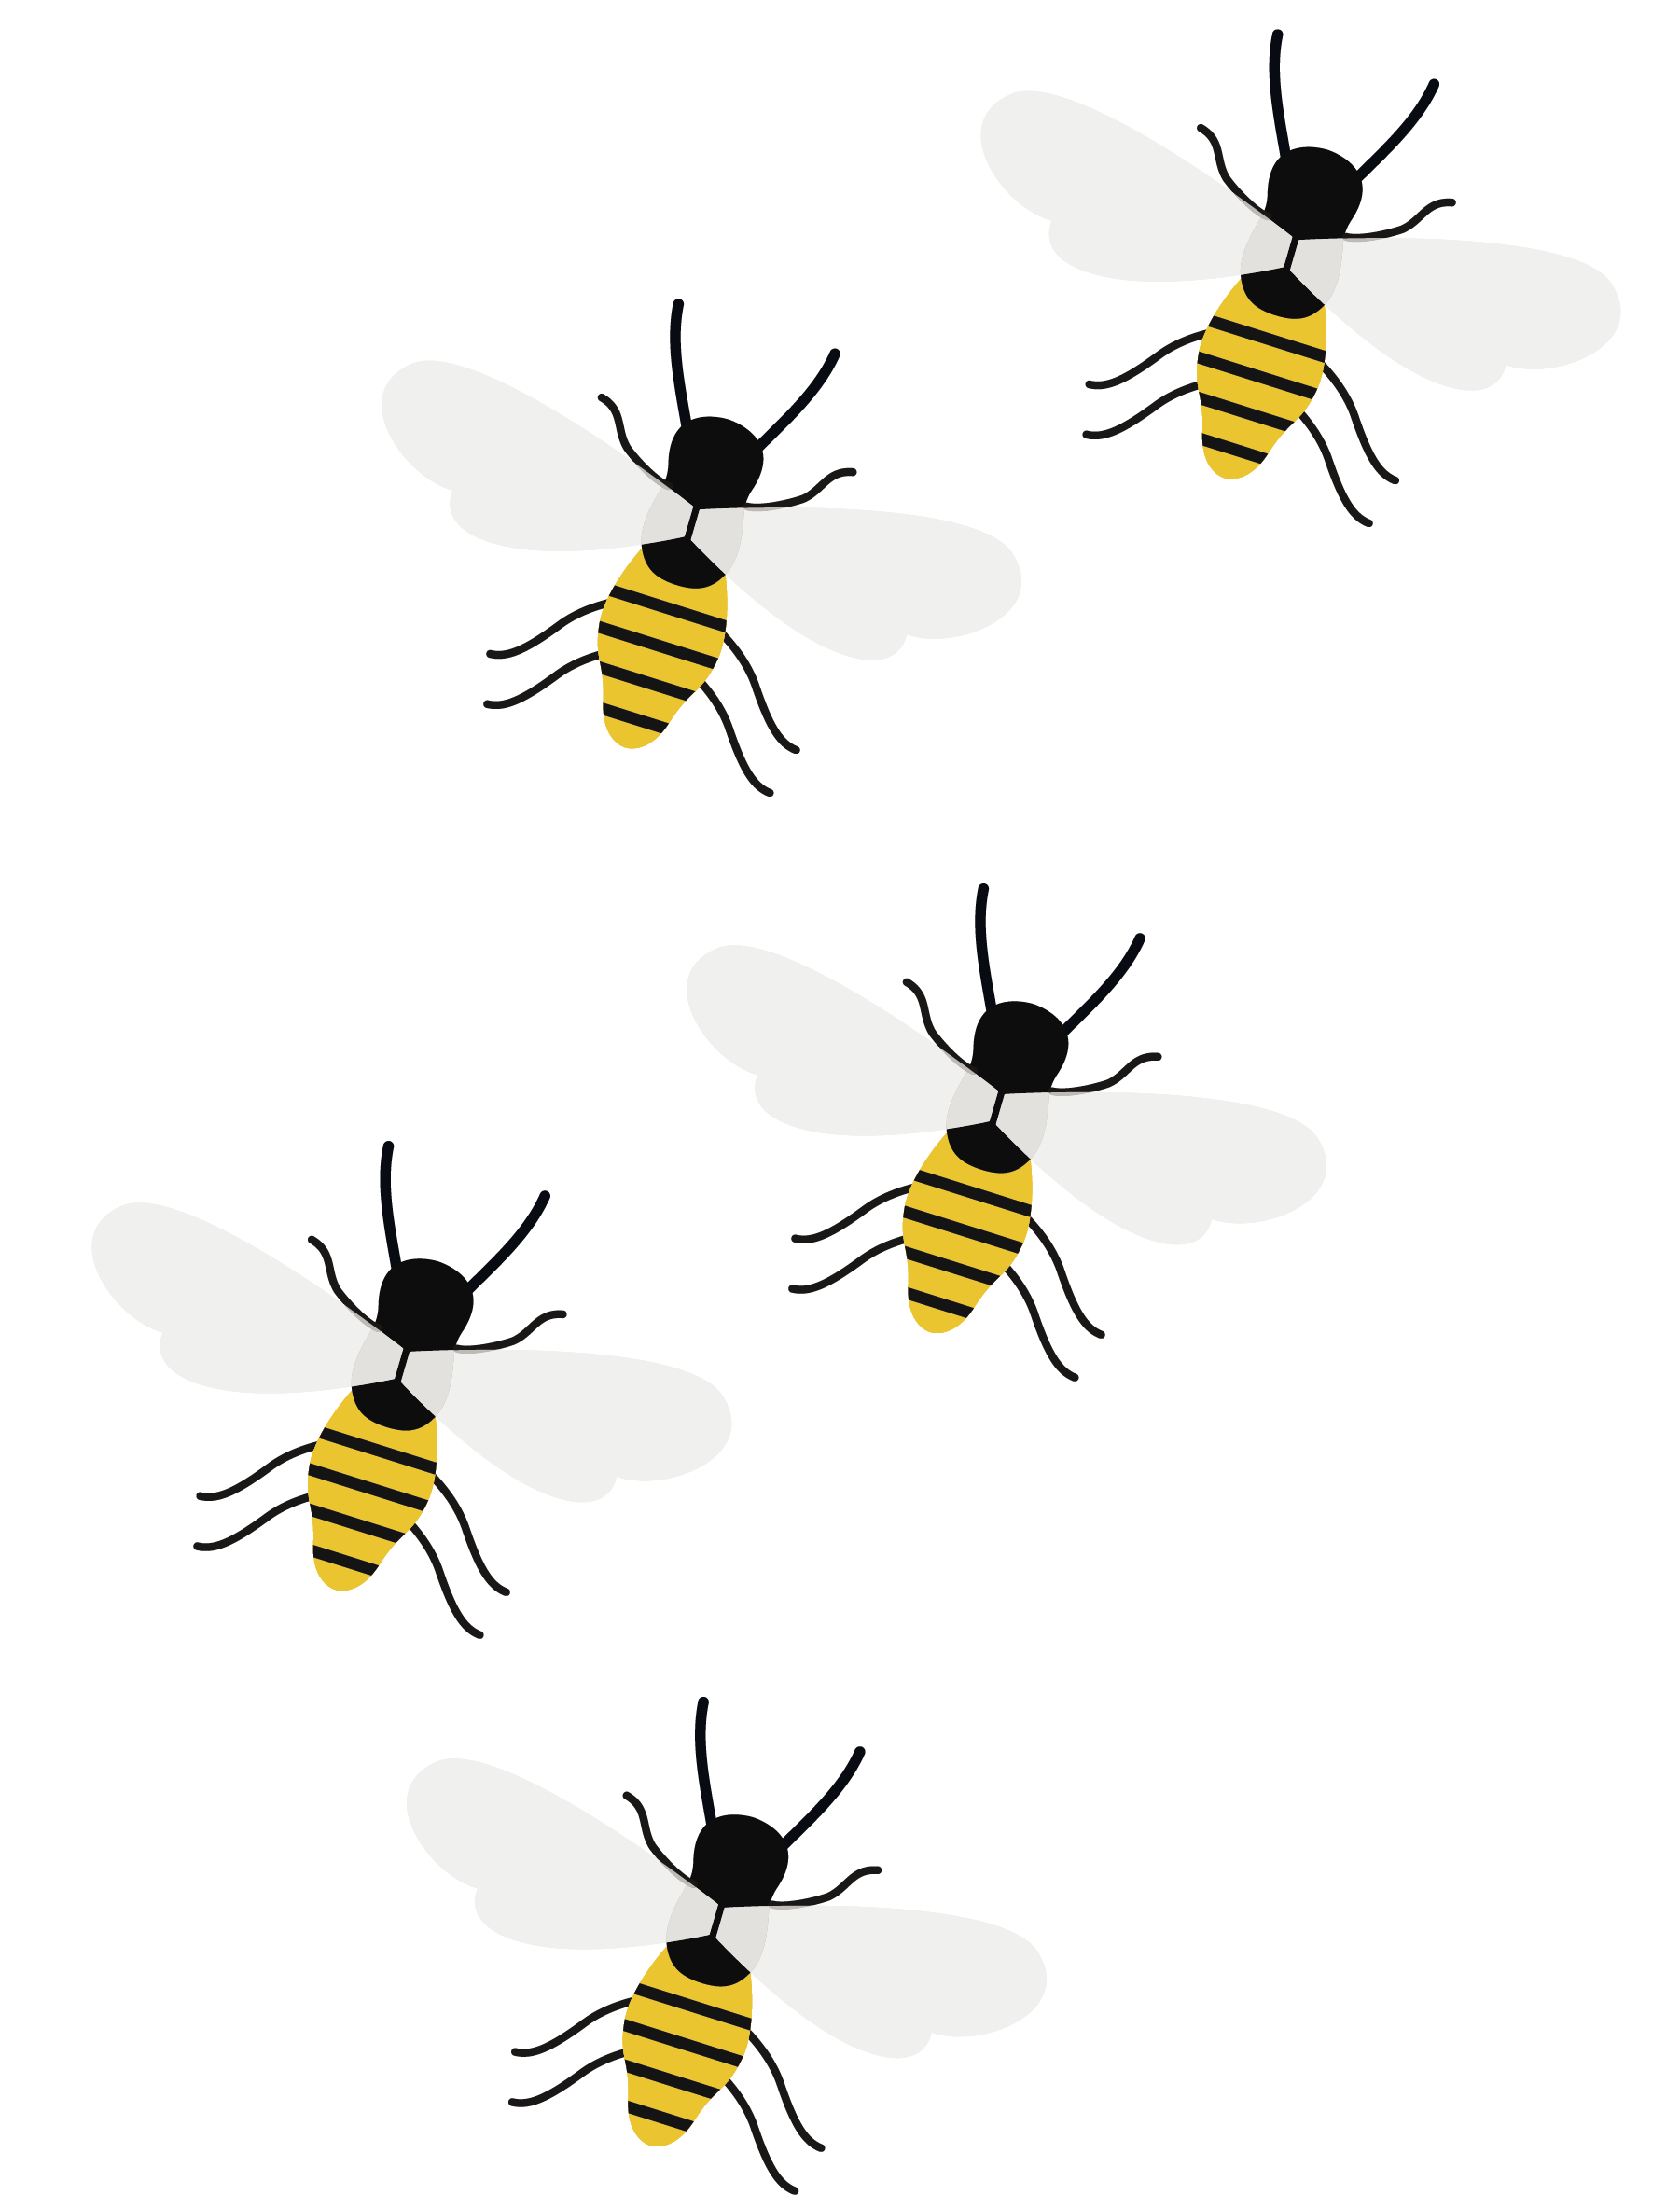 https://www.membership-matters.co.uk/wp-content/uploads/2018/01/Bees-1.png